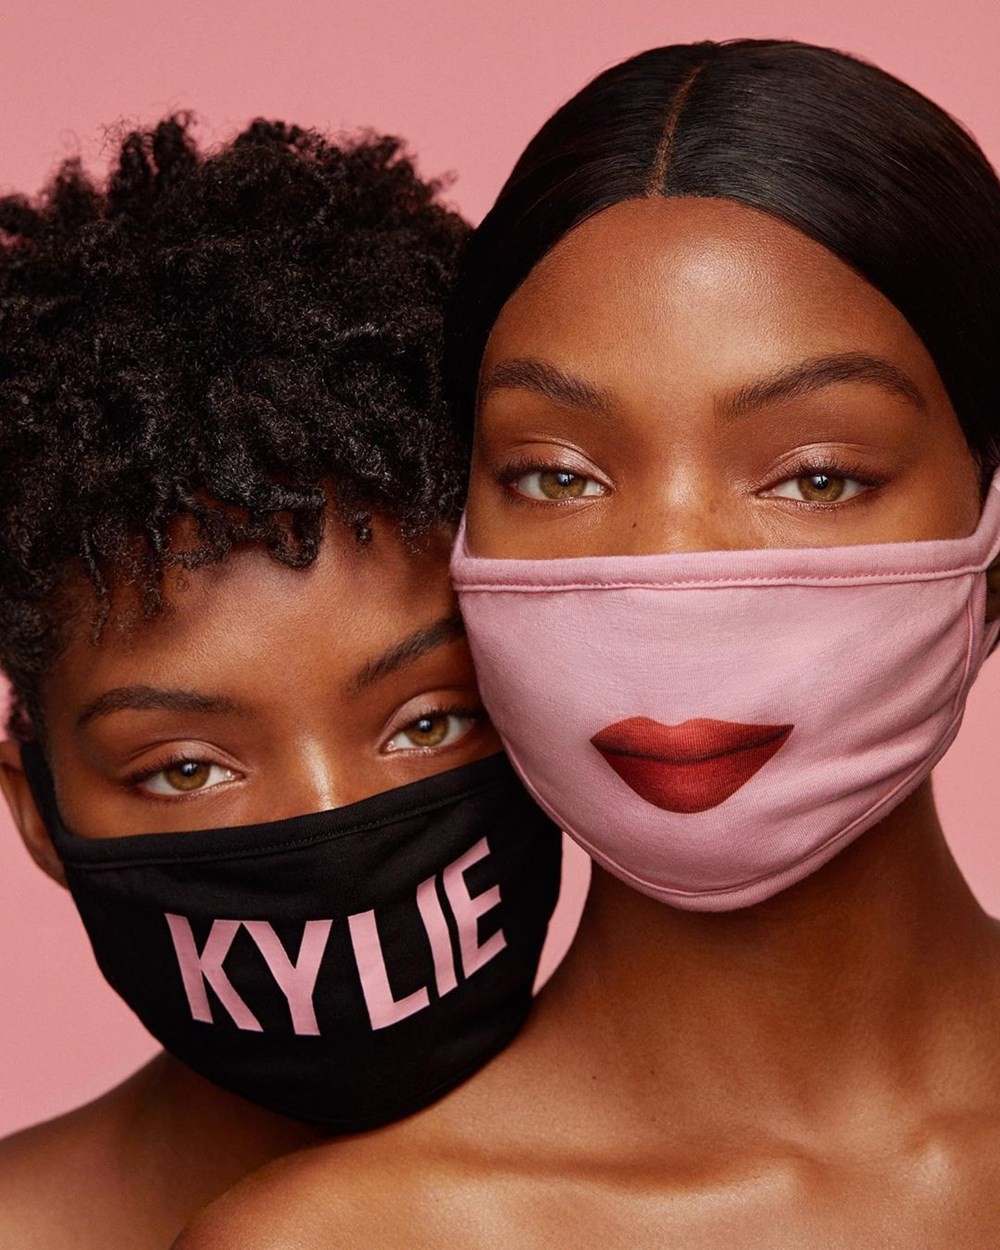 Kylie Jenner, the marks of the full-face mask - 2